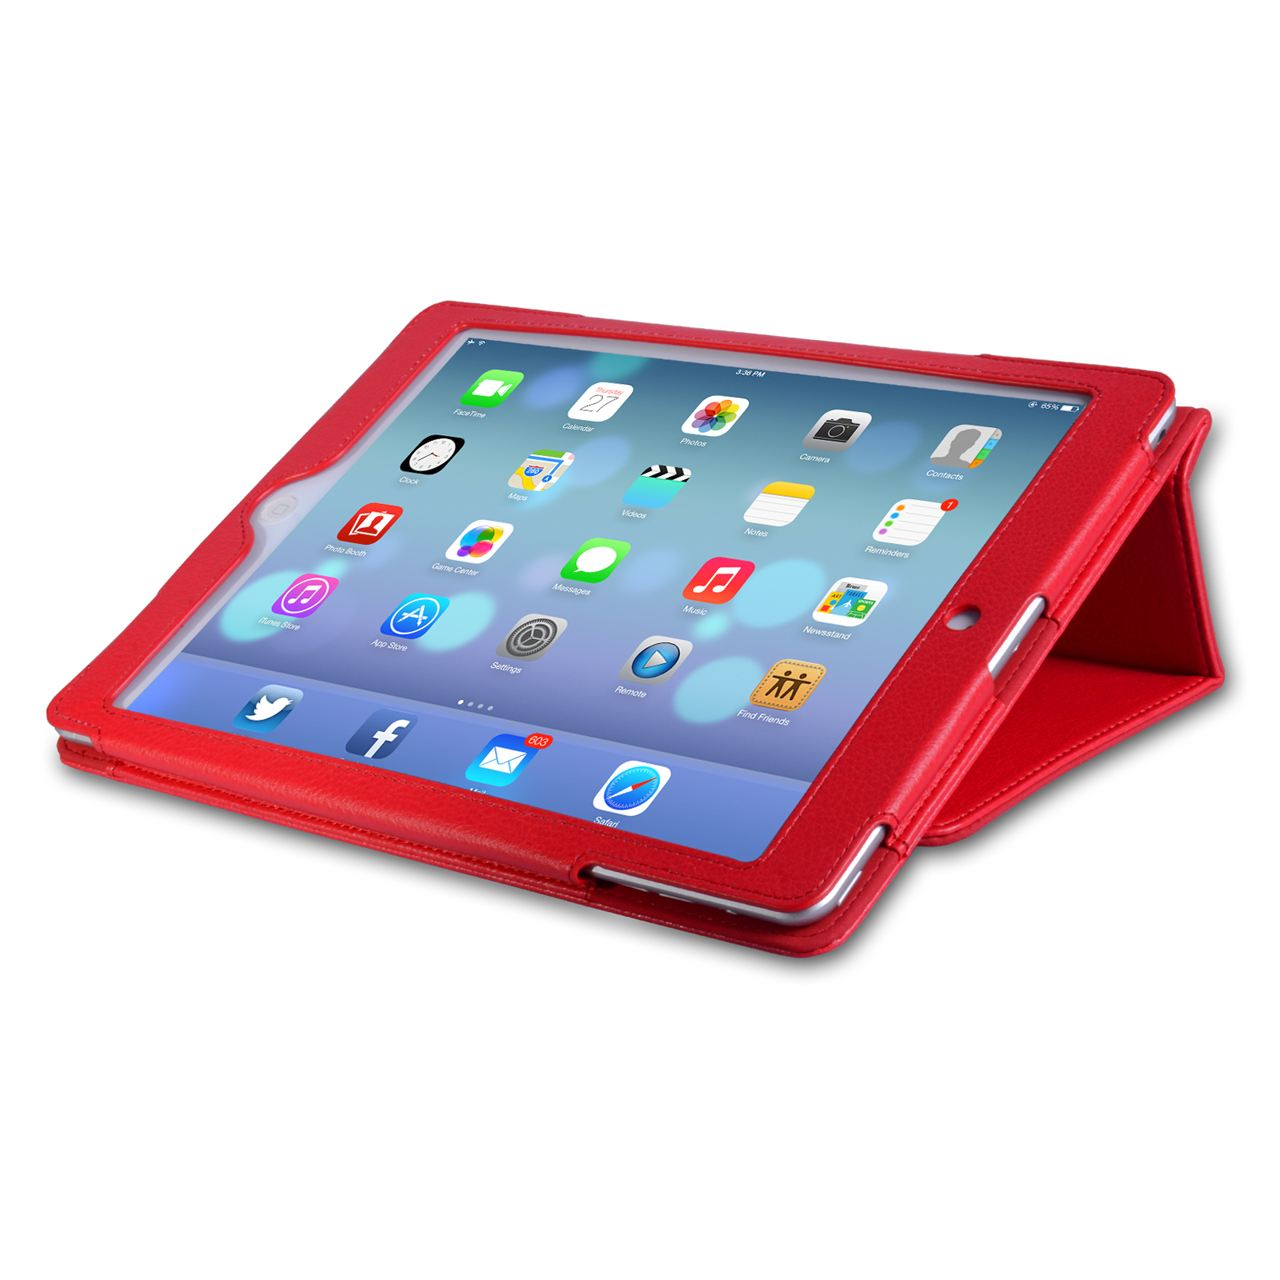 Caseflex Ipad Air Textured Leather-Effect Stand Cover - Red